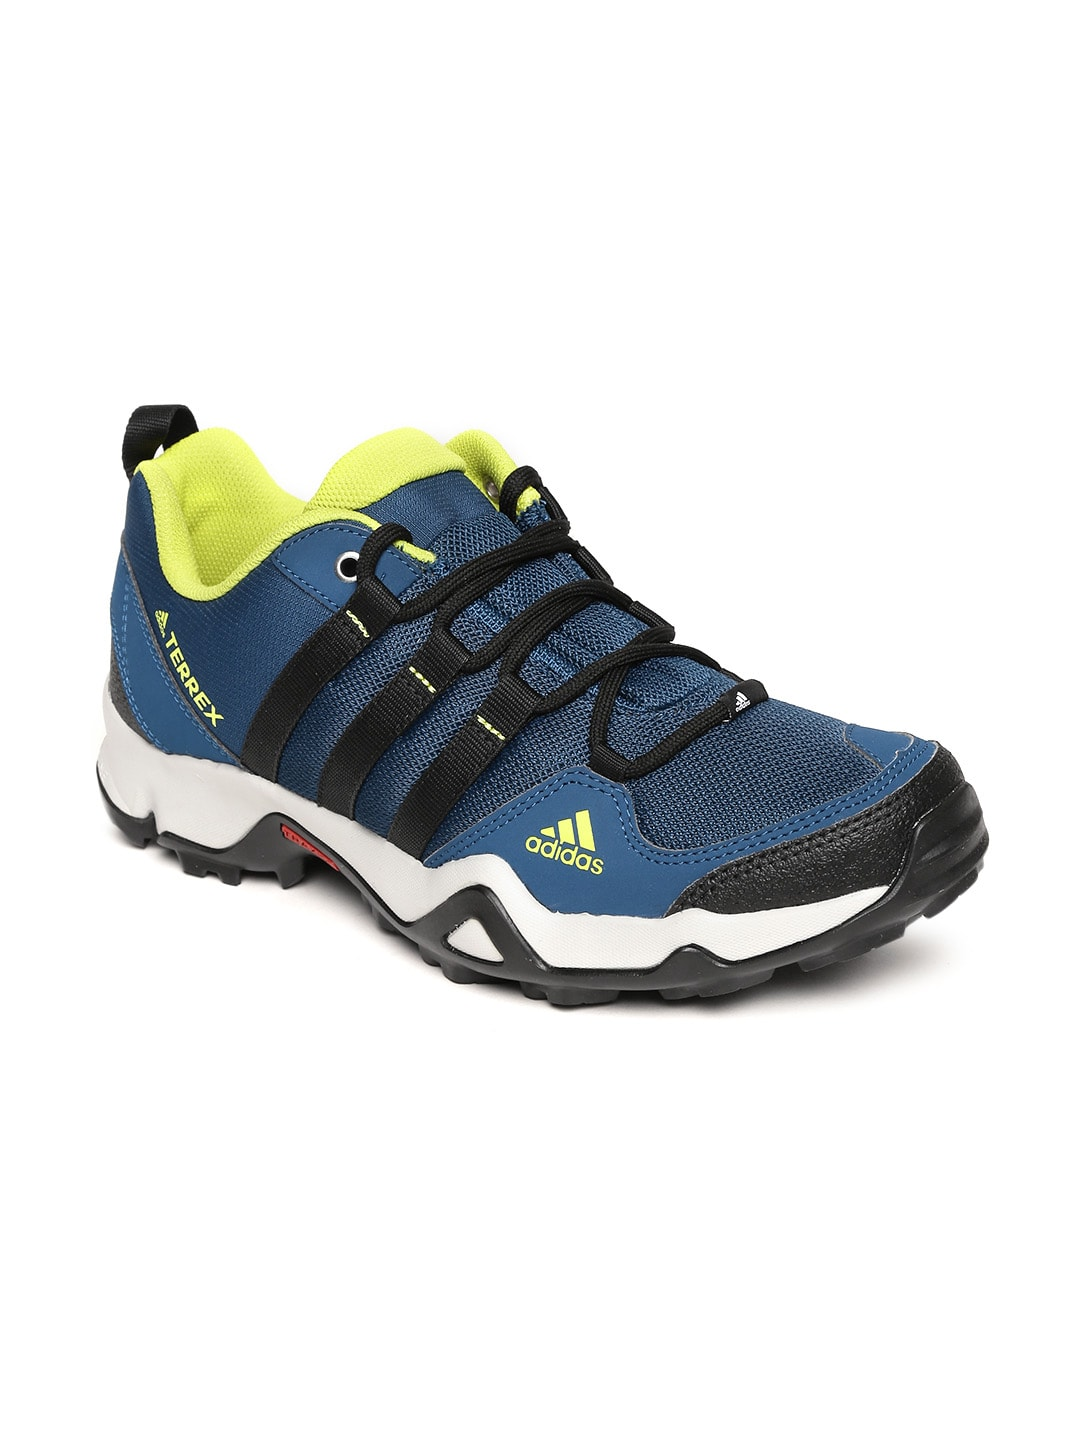 super popular fda85 b7d4d Adidas Scott - Buy Adidas Scott online in India